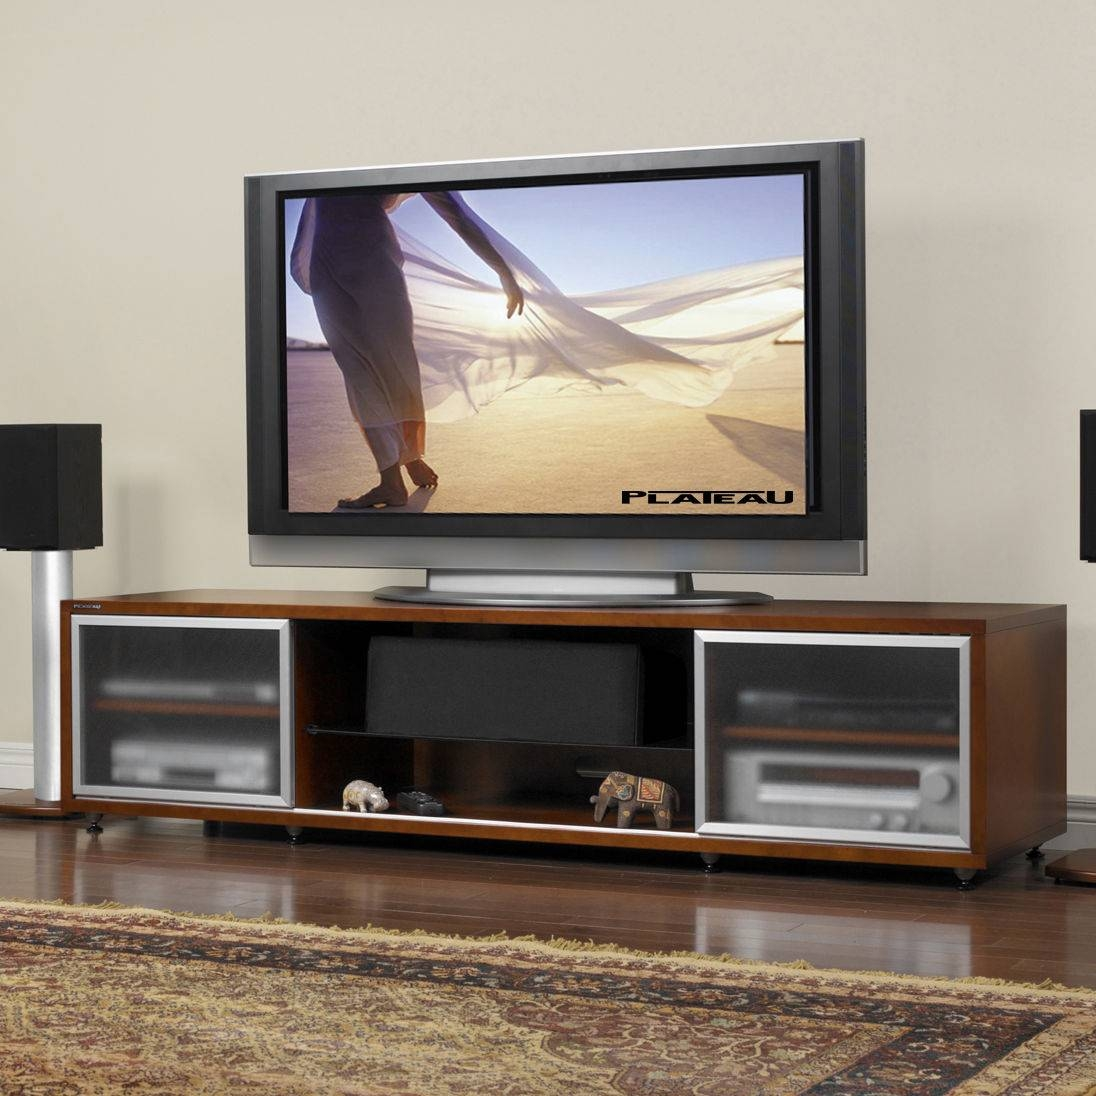 Image Gallery Of Wooden Tv Stands With Glass Doors View 7 Of 15 Photos